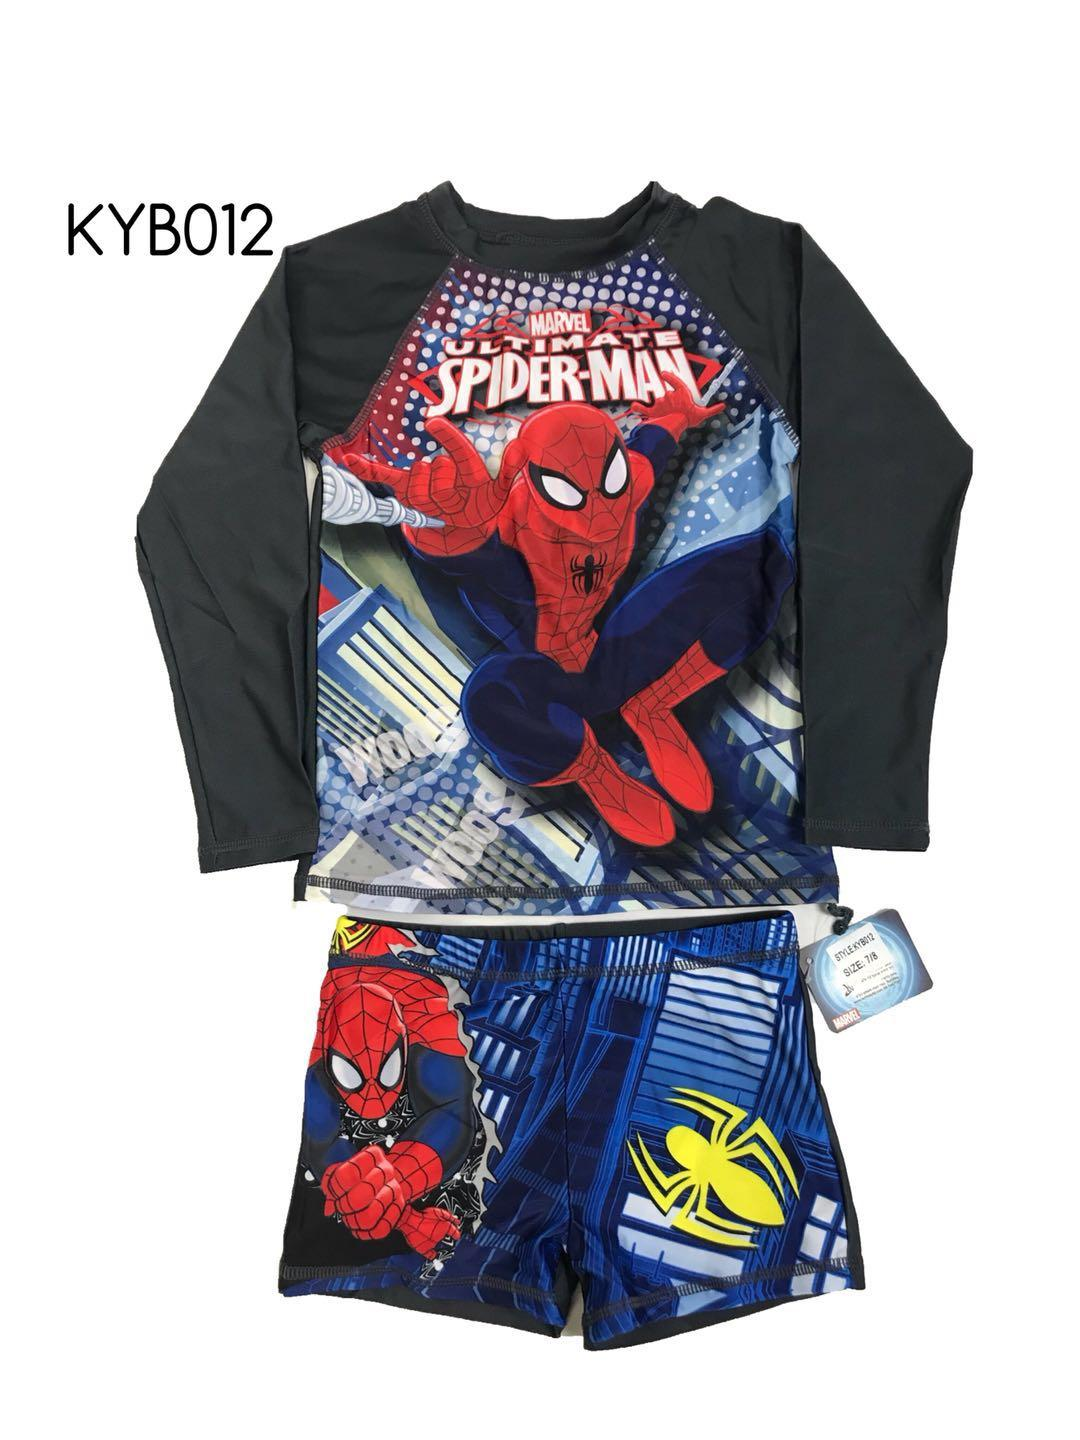 Baby&kids Terno Rashguard Longsleeve And Shorts For Boykyb012 By Joy Wears.